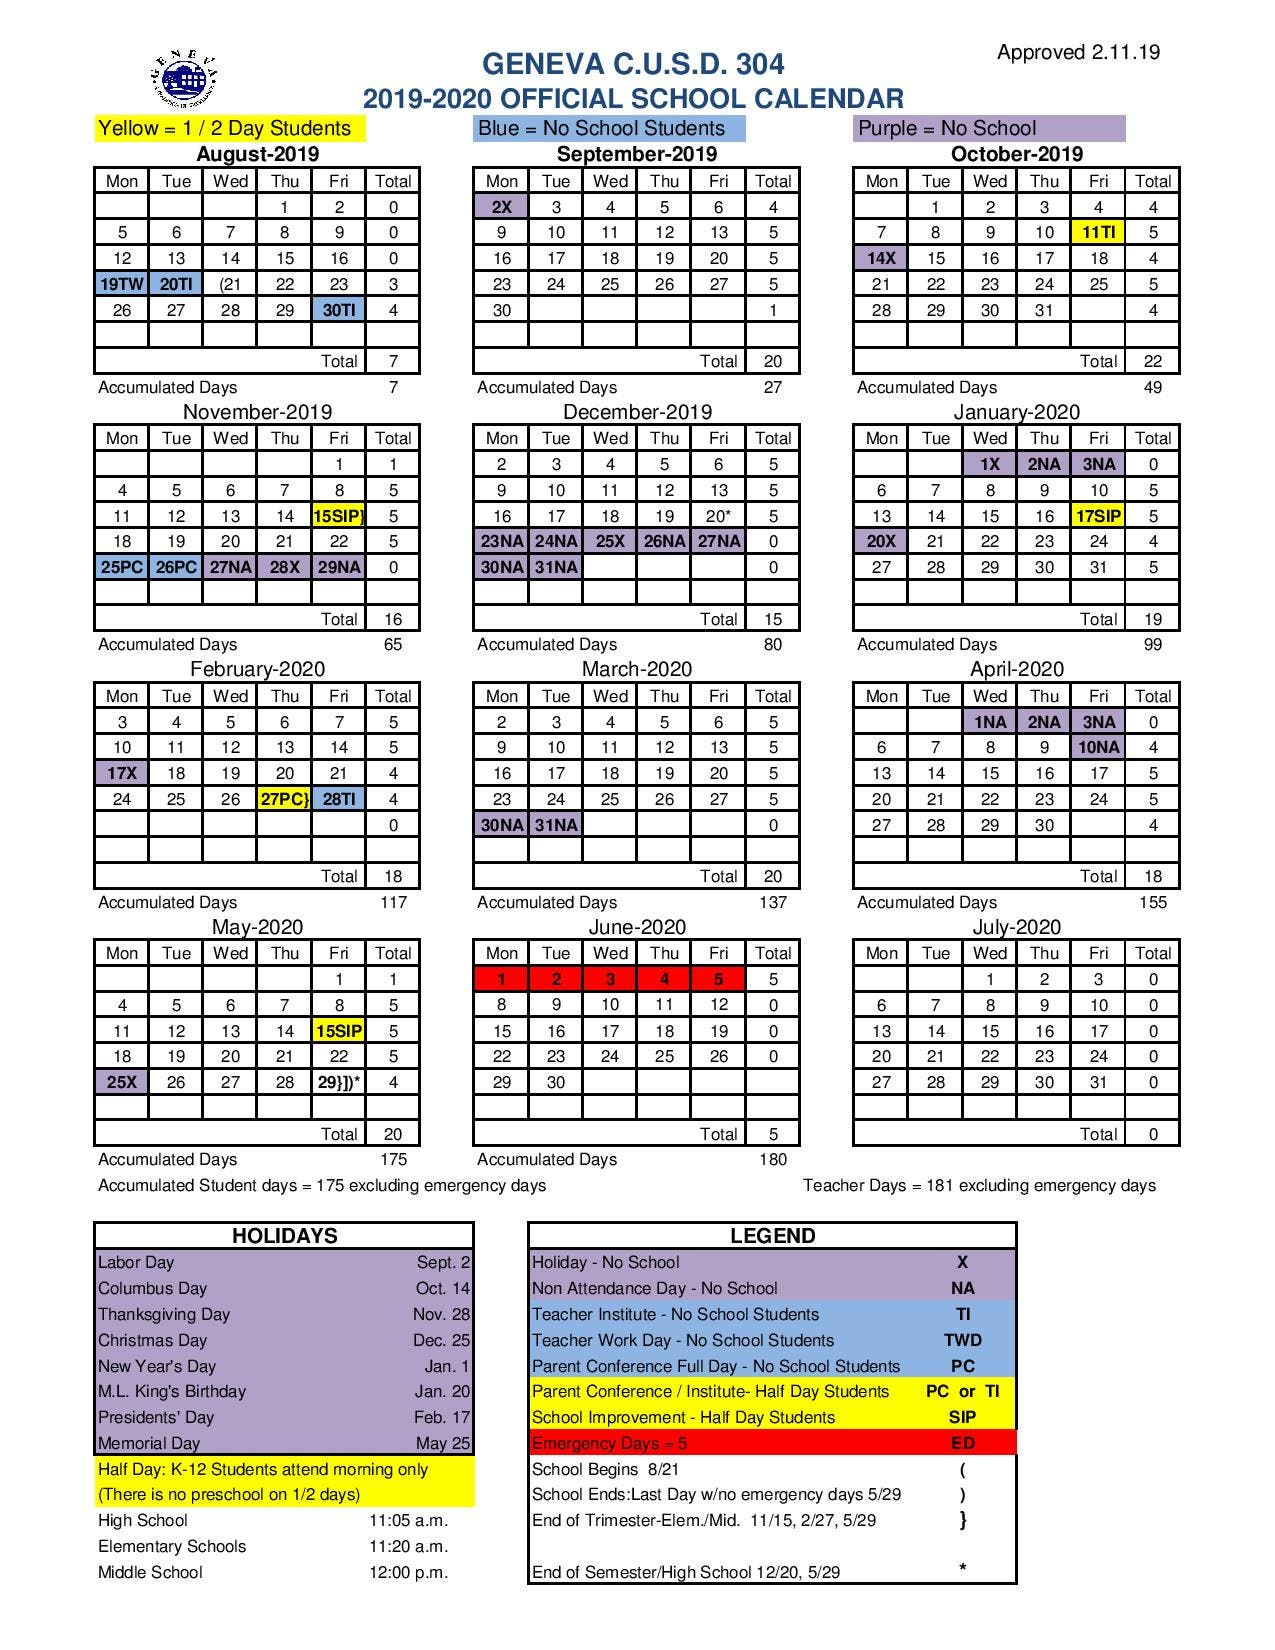 Montgomery County School Calendar 2019 20.District 304 School Calendar 2019 20 Important Dates To Know